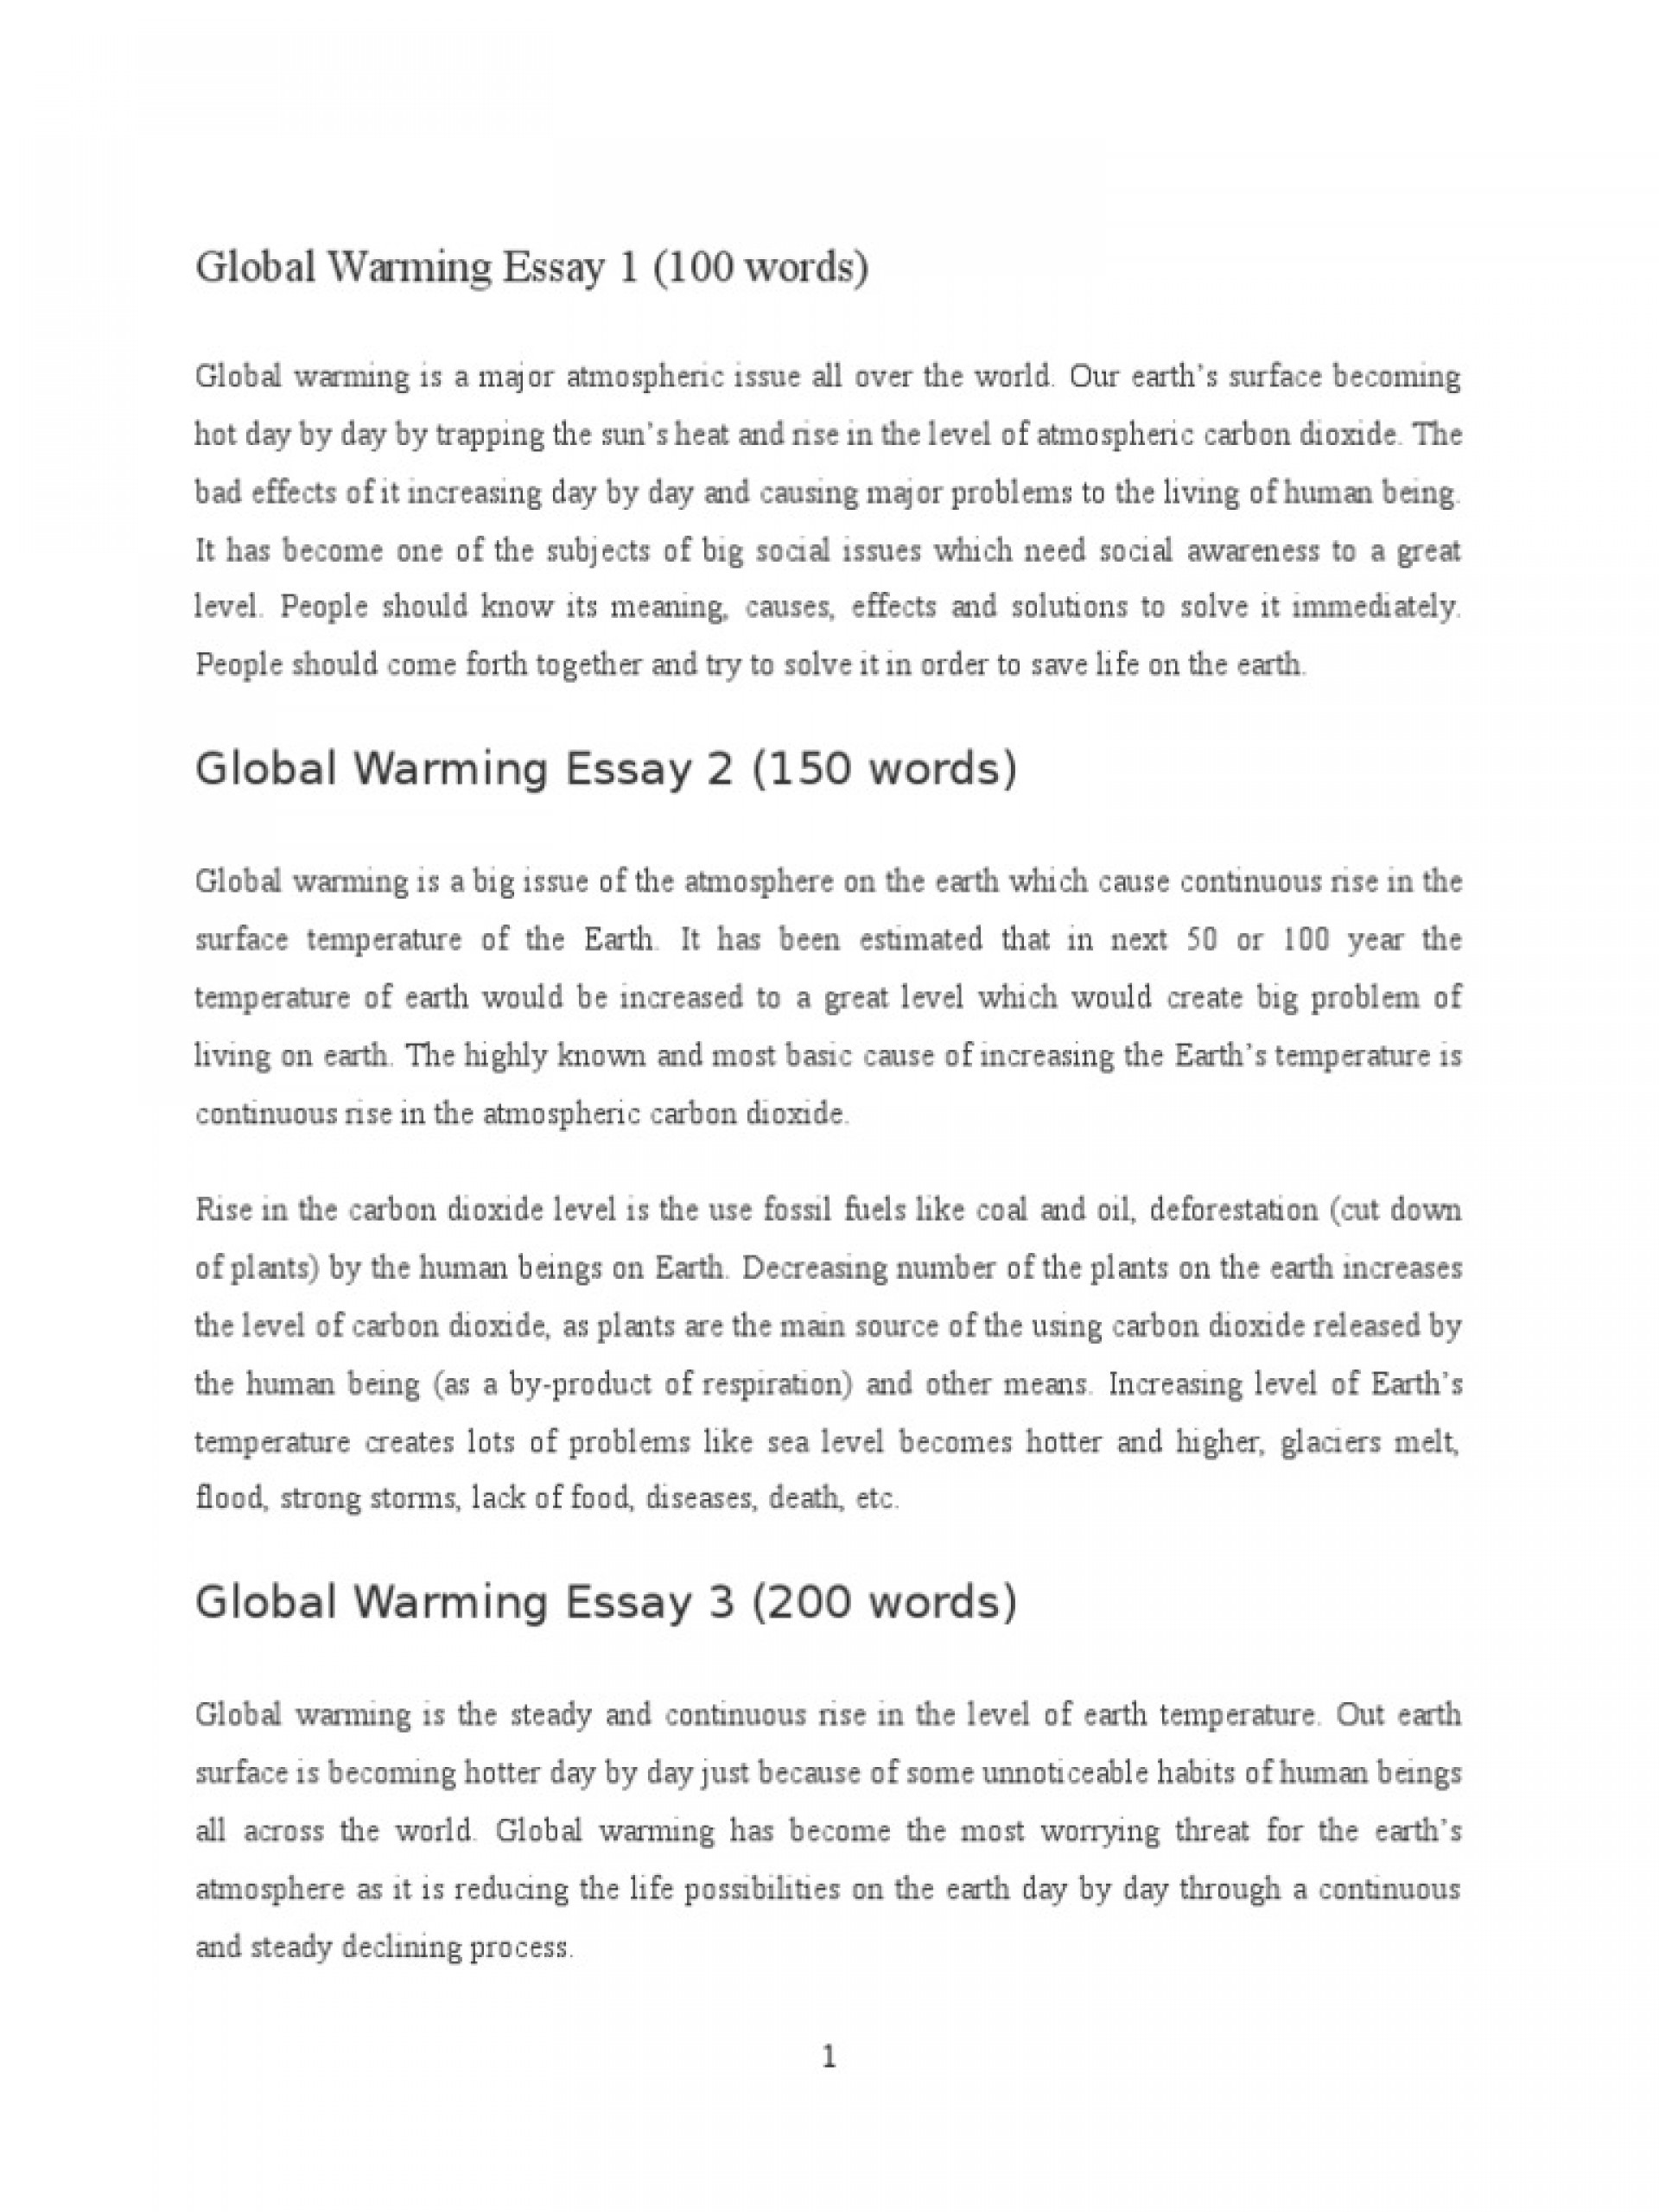 008 Global Warming Essay 1 5882e593b6d87f85288b46ba Unusual Persuasive Thesis Free Research Paper Topics 1920